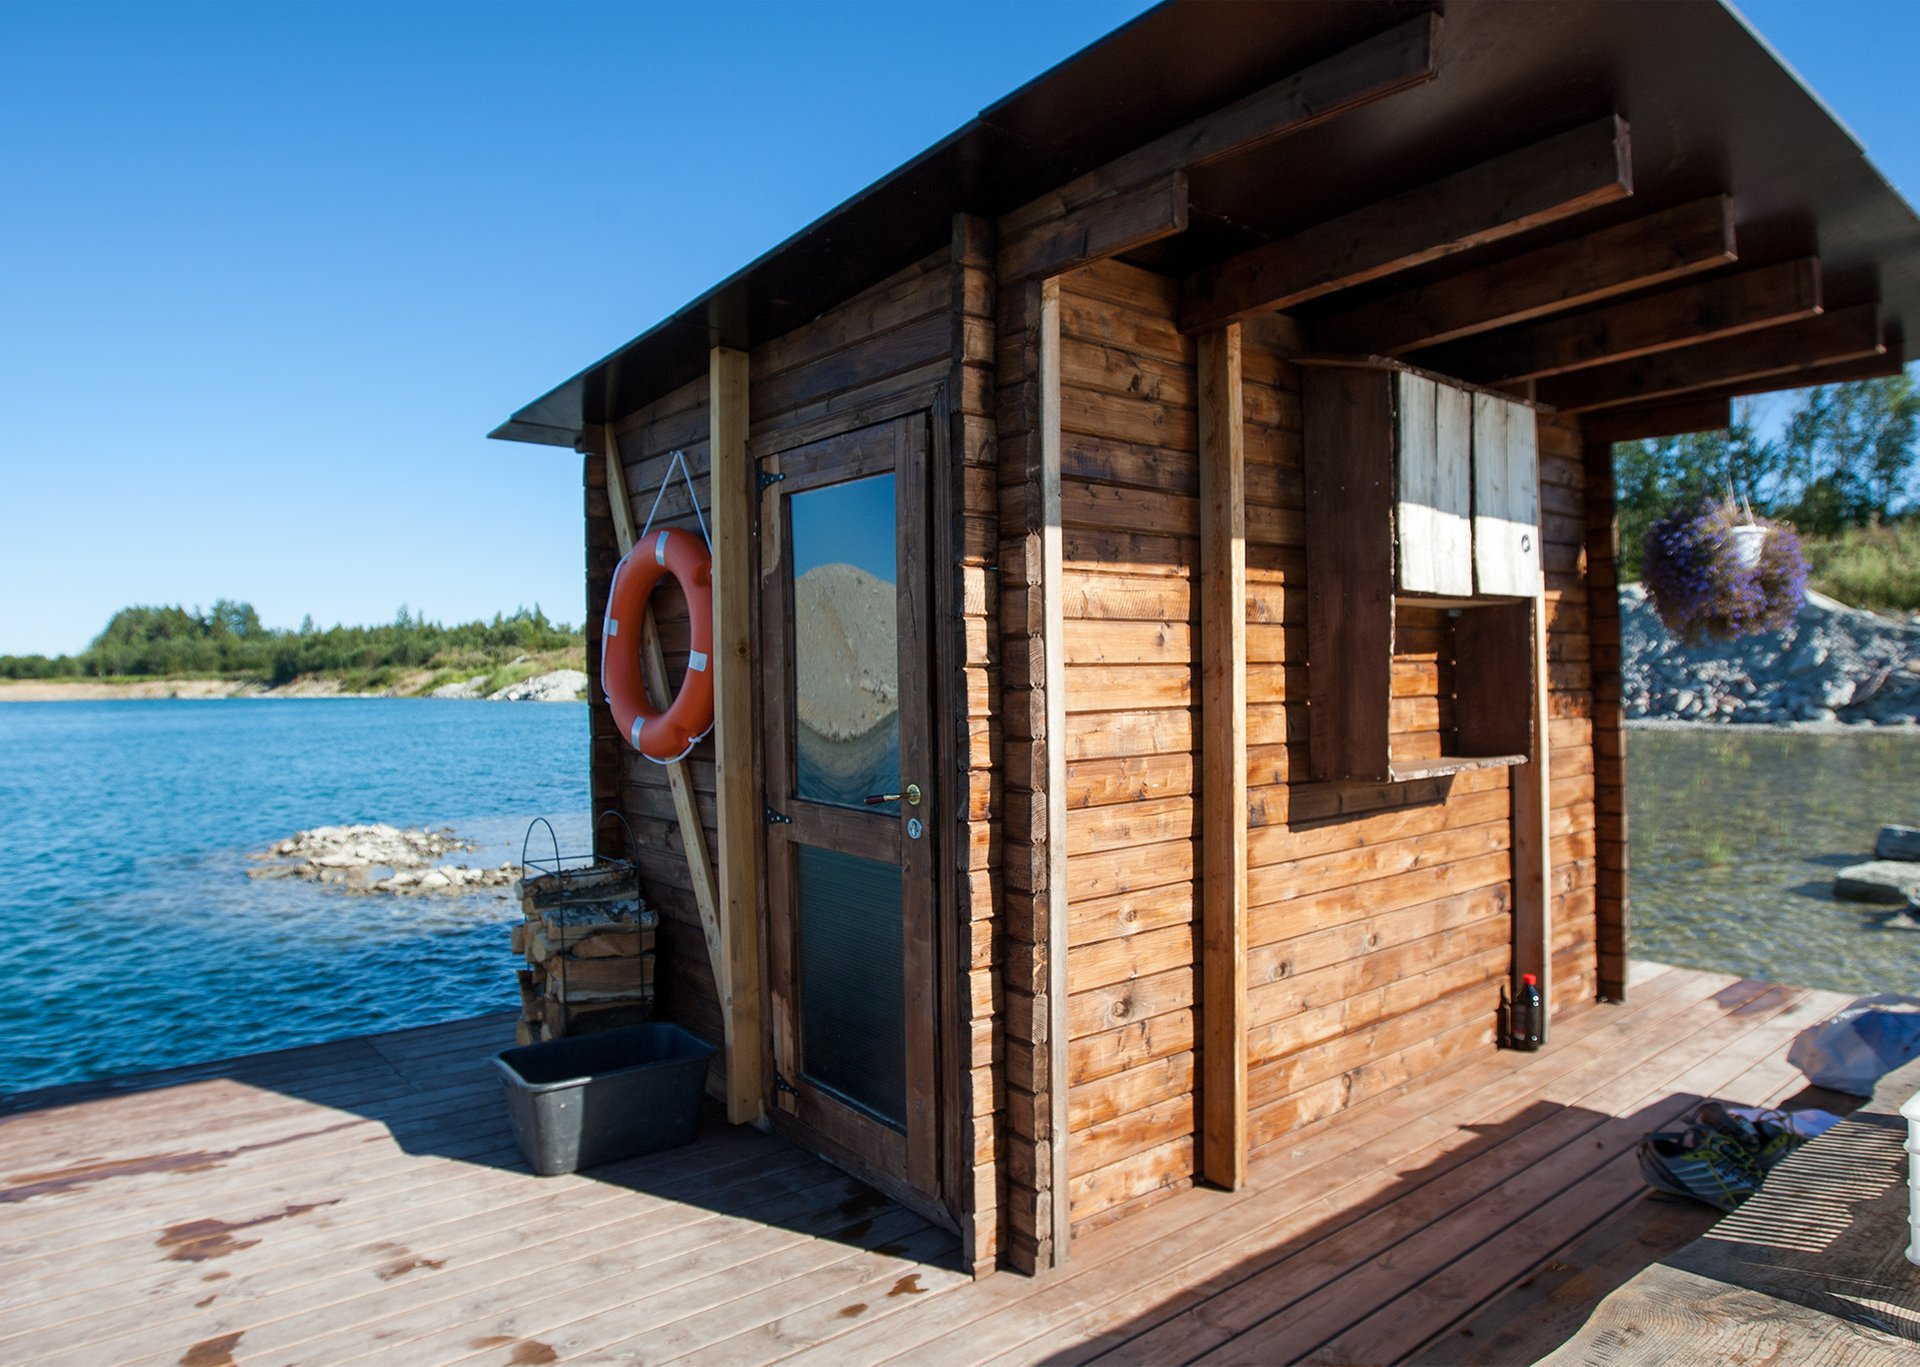 Floating Sauna in Estonia - Best Season 2020